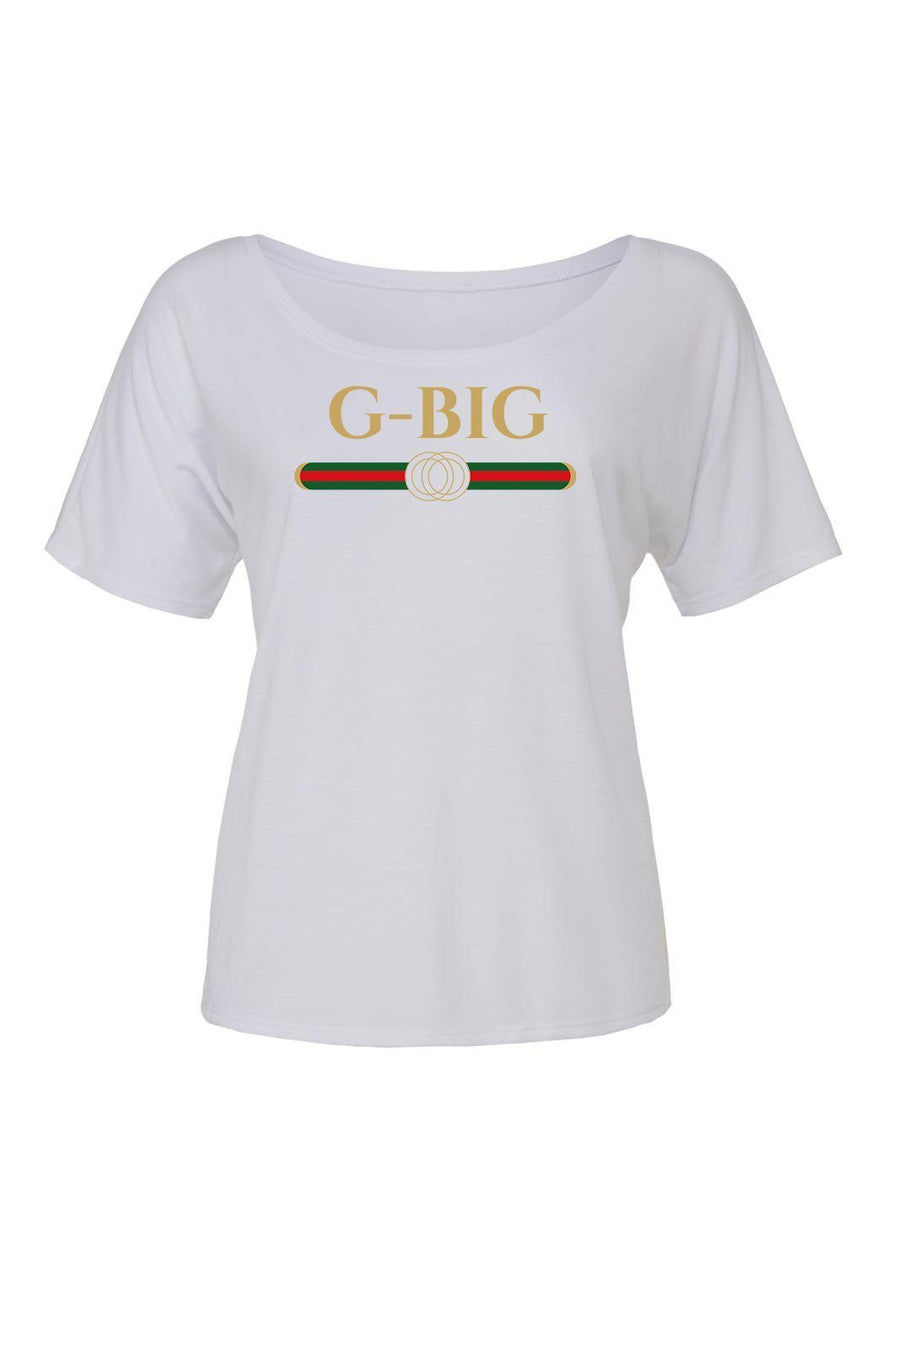 Big Little Designer Shirt - Bella Slouchy V-Neck Short Sleeve, Ladies, Sunny and Southern, - Sunny and Southern,